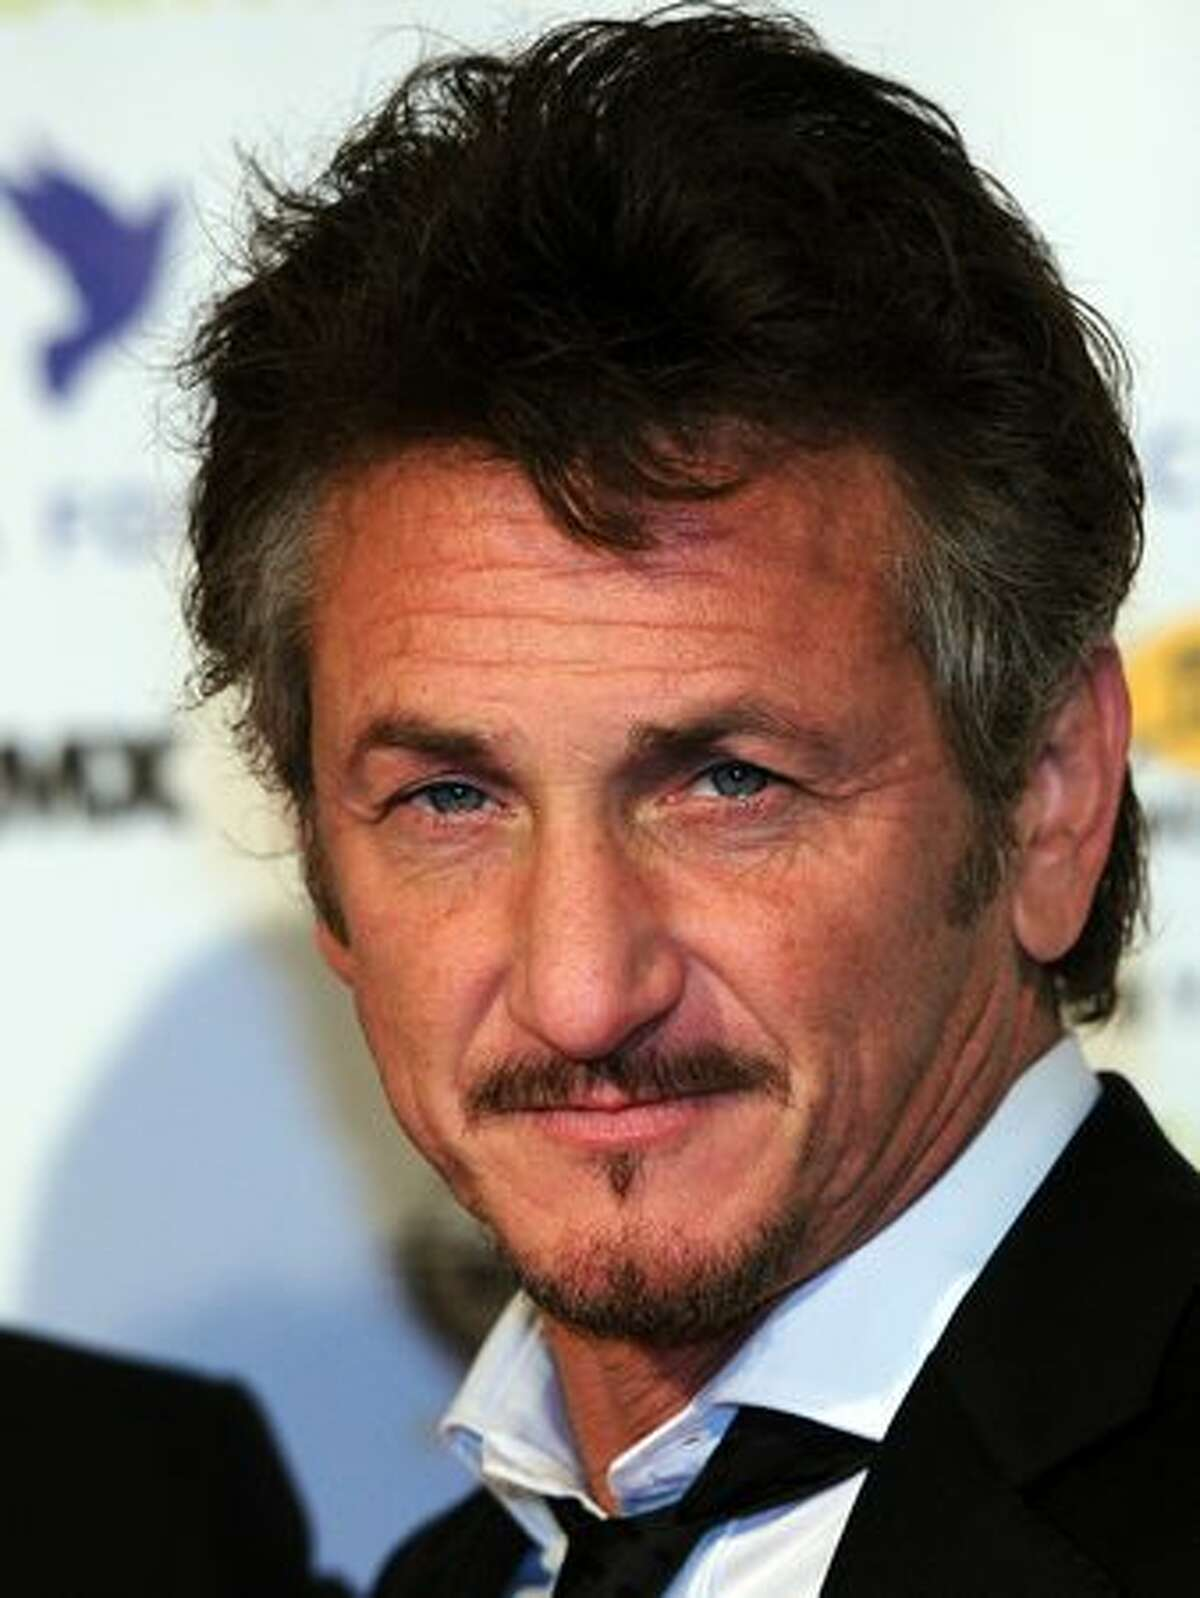 Actor Sean Penn arrives for the gala Cinema for Peace on the sidelines of the 61st Berlin International Film Festival.